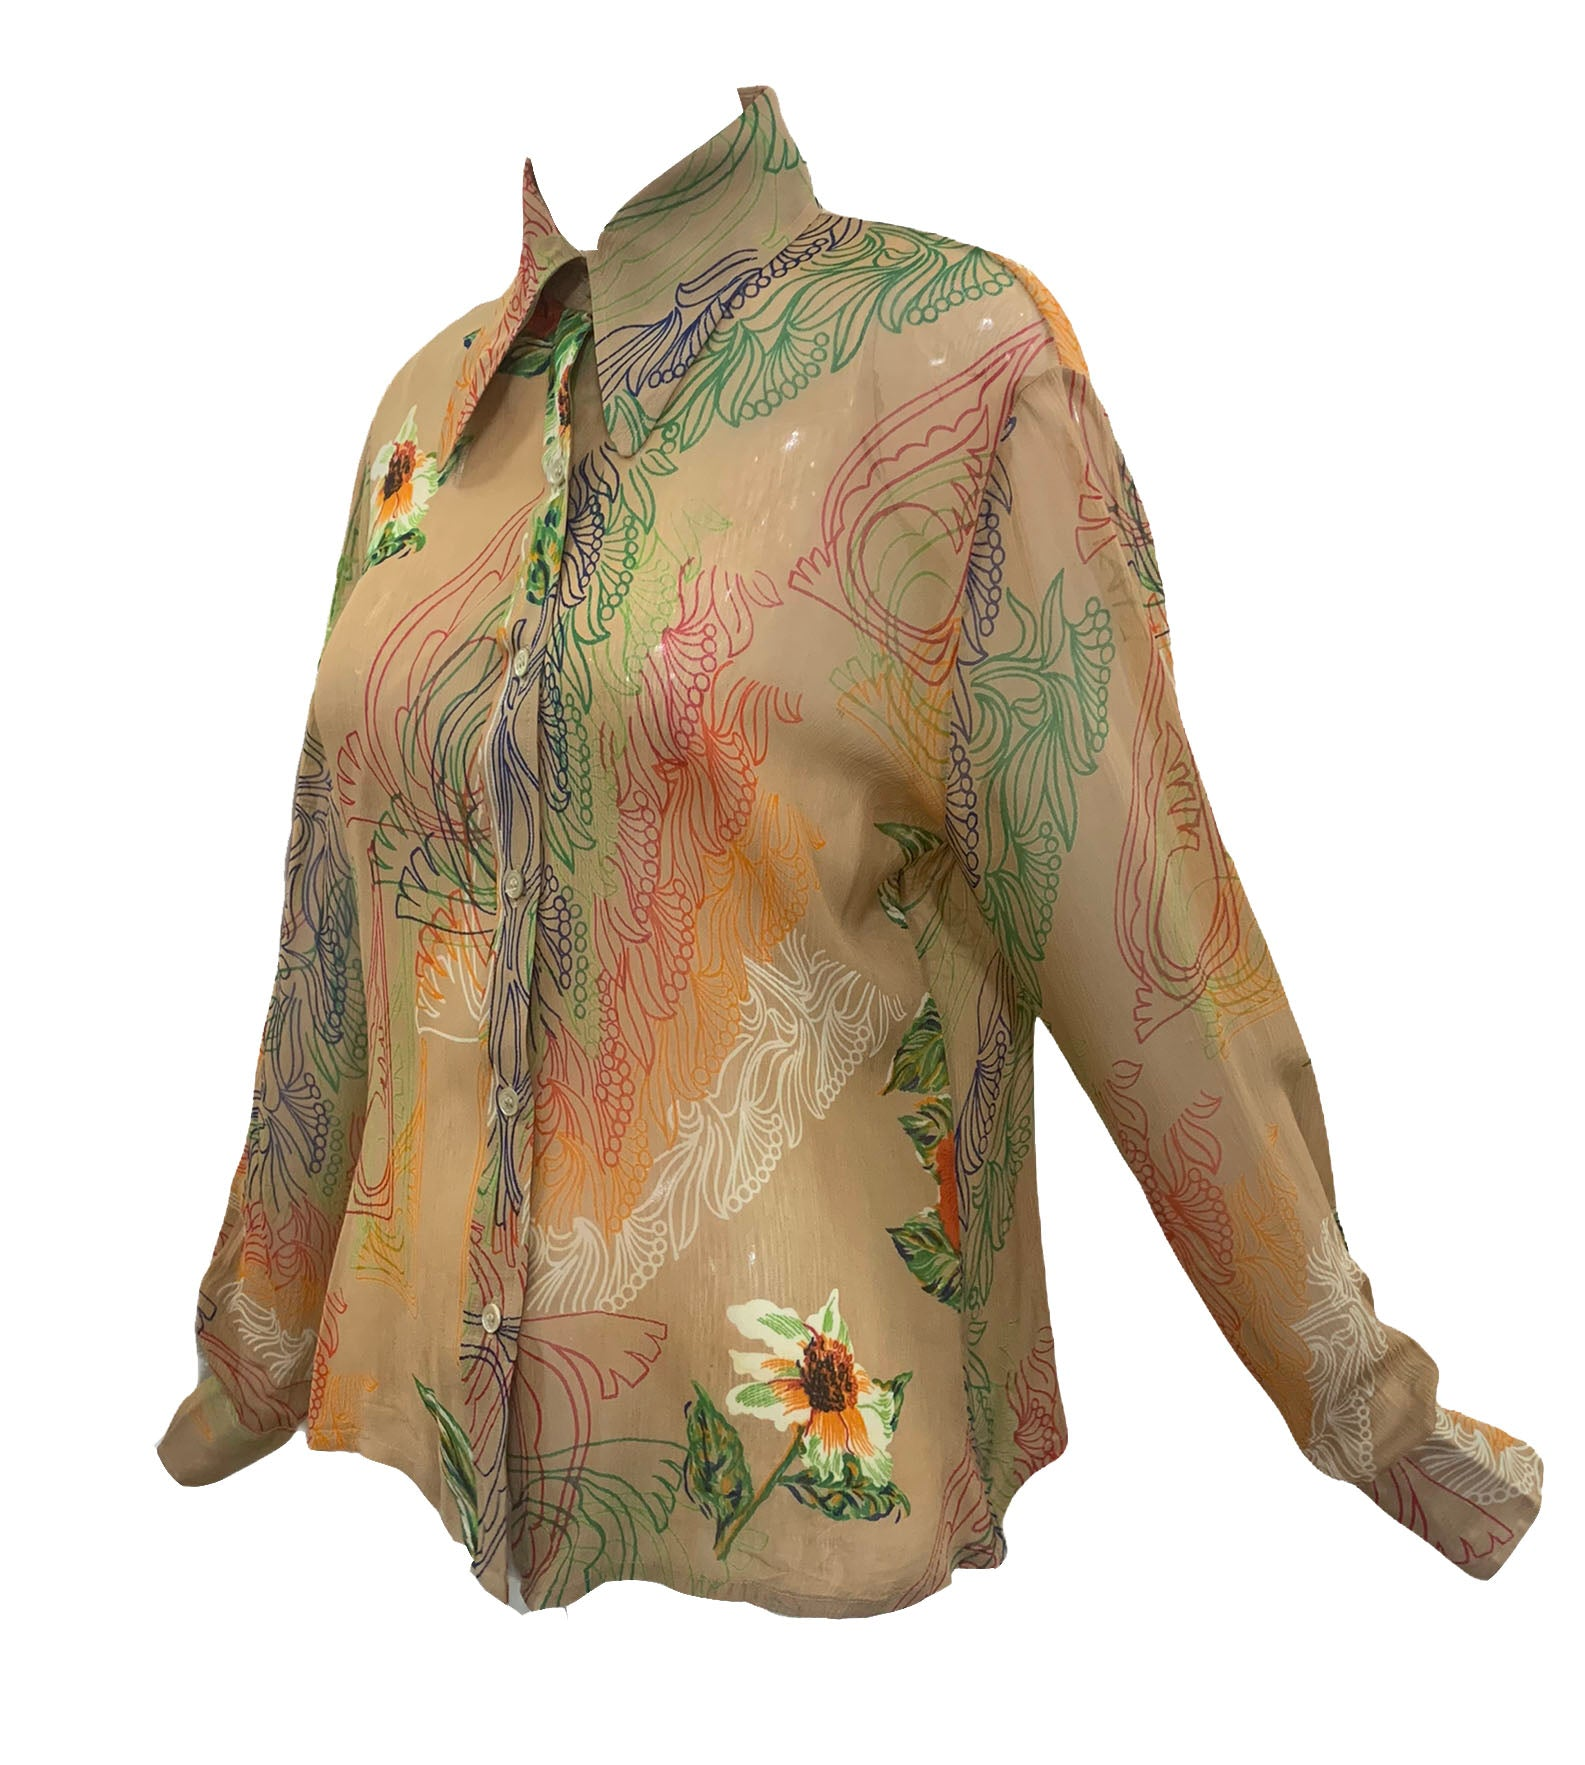 Franck Olivier 70s Blouse Nude with Wild Floral Print  SIDE 2 of 4